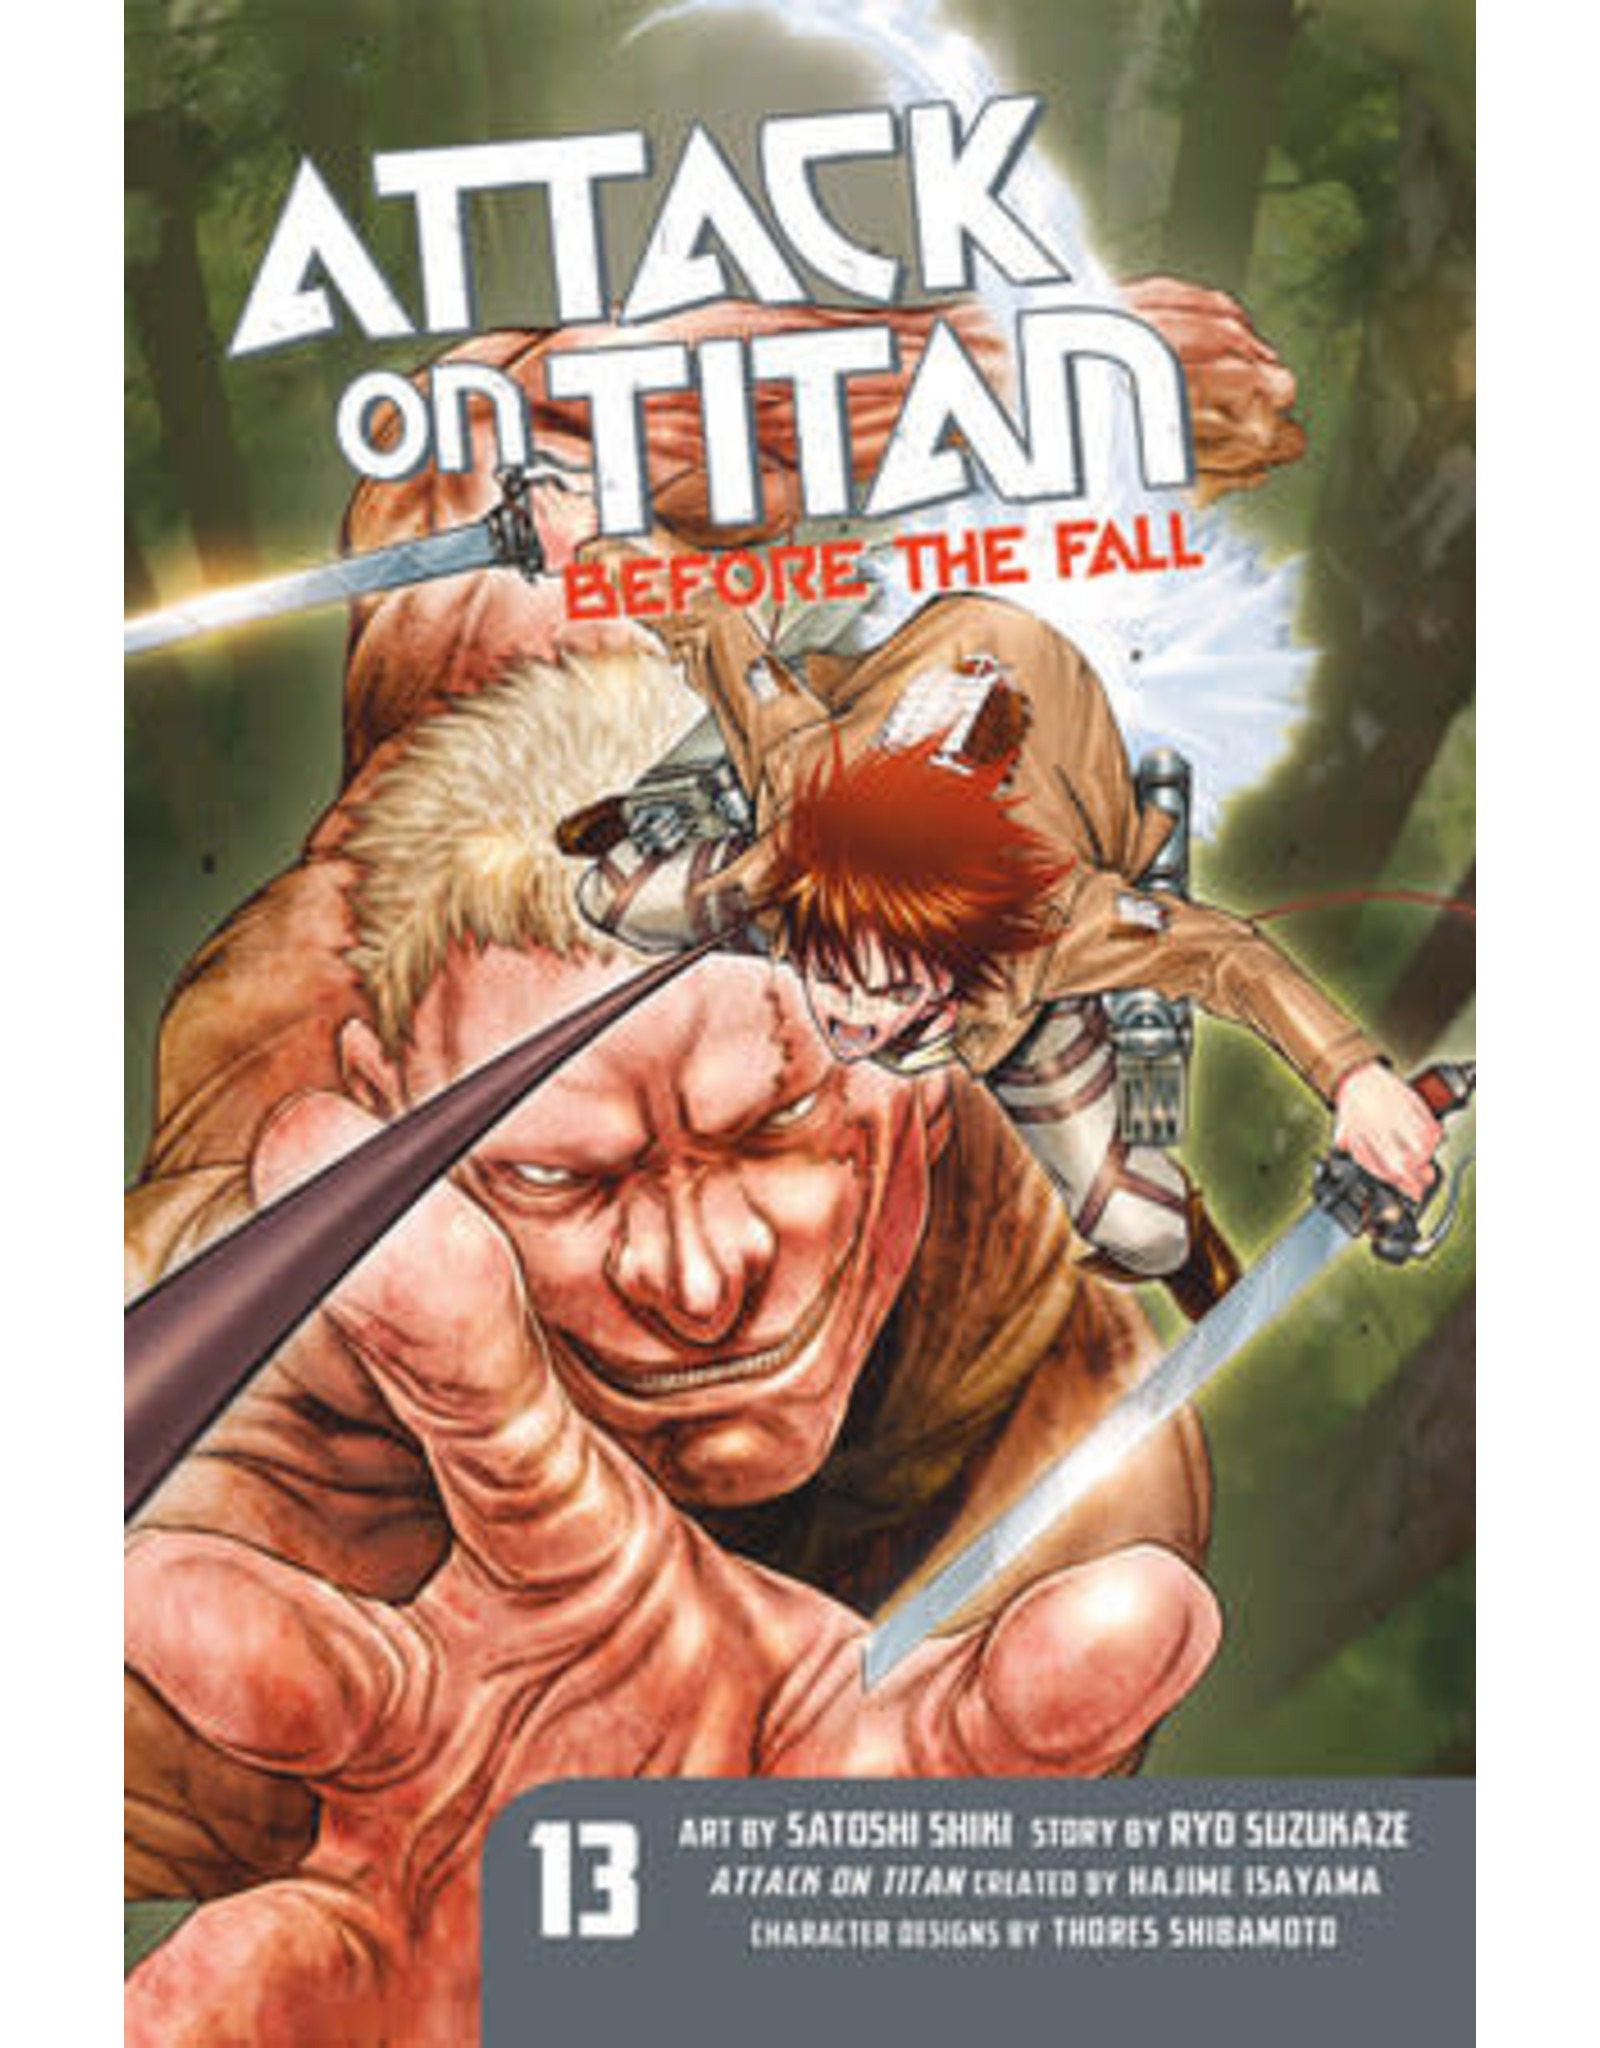 Attack on Titan: Before The Fall 13 (Engelstalig)